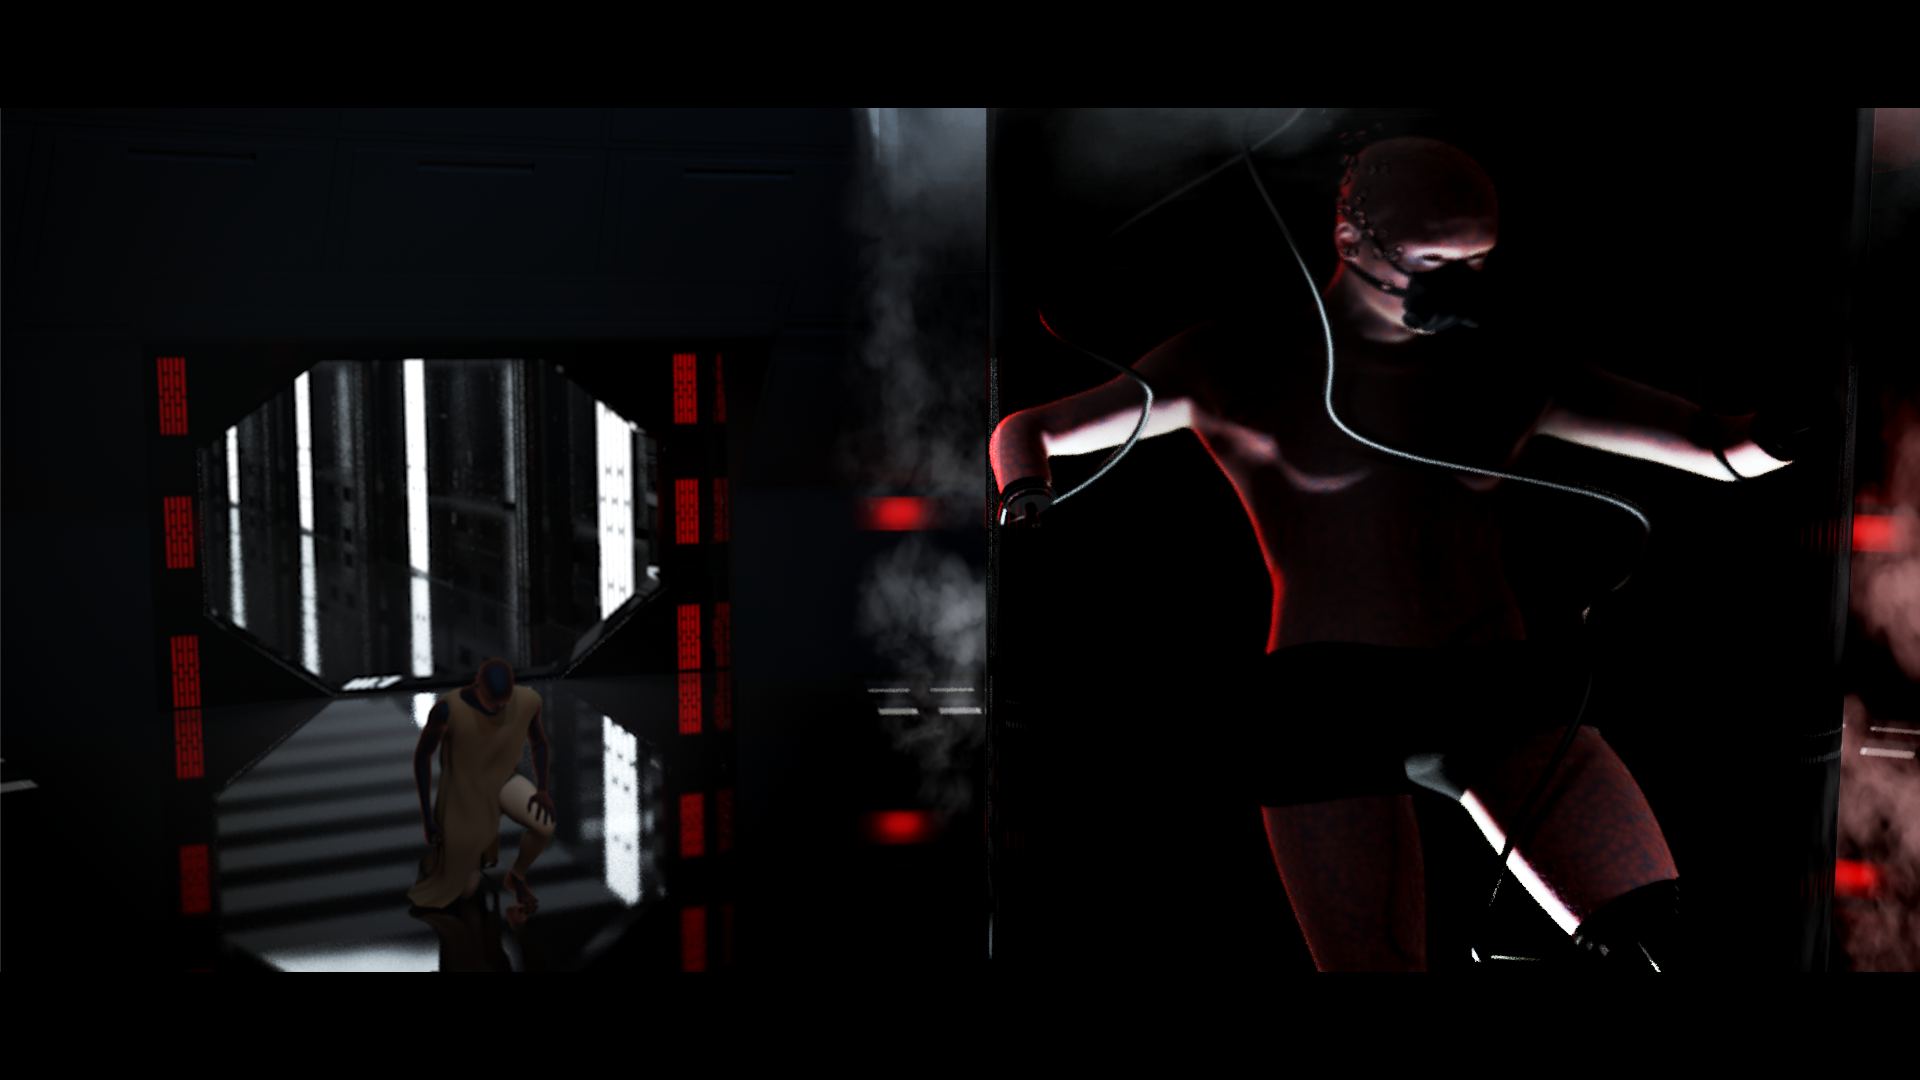 In charge of everything: lighting, texturing, modeling, and compositing. I did not model human figures.